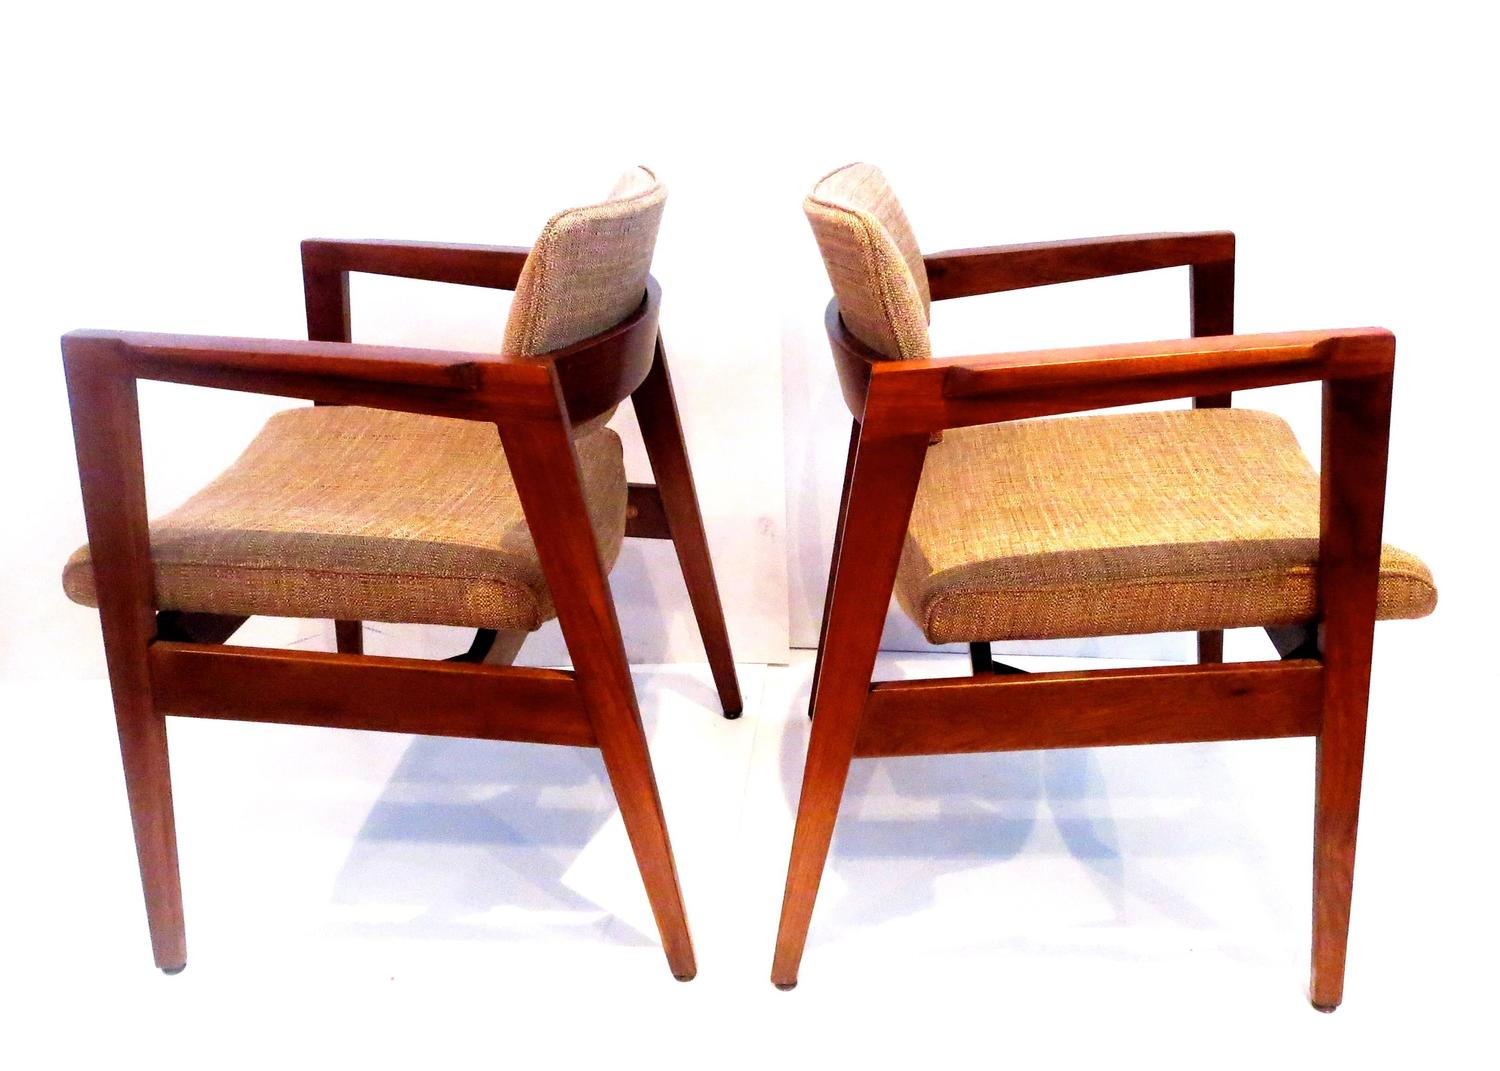 1950s American Modern solid Walnut Pair of Armchairs by